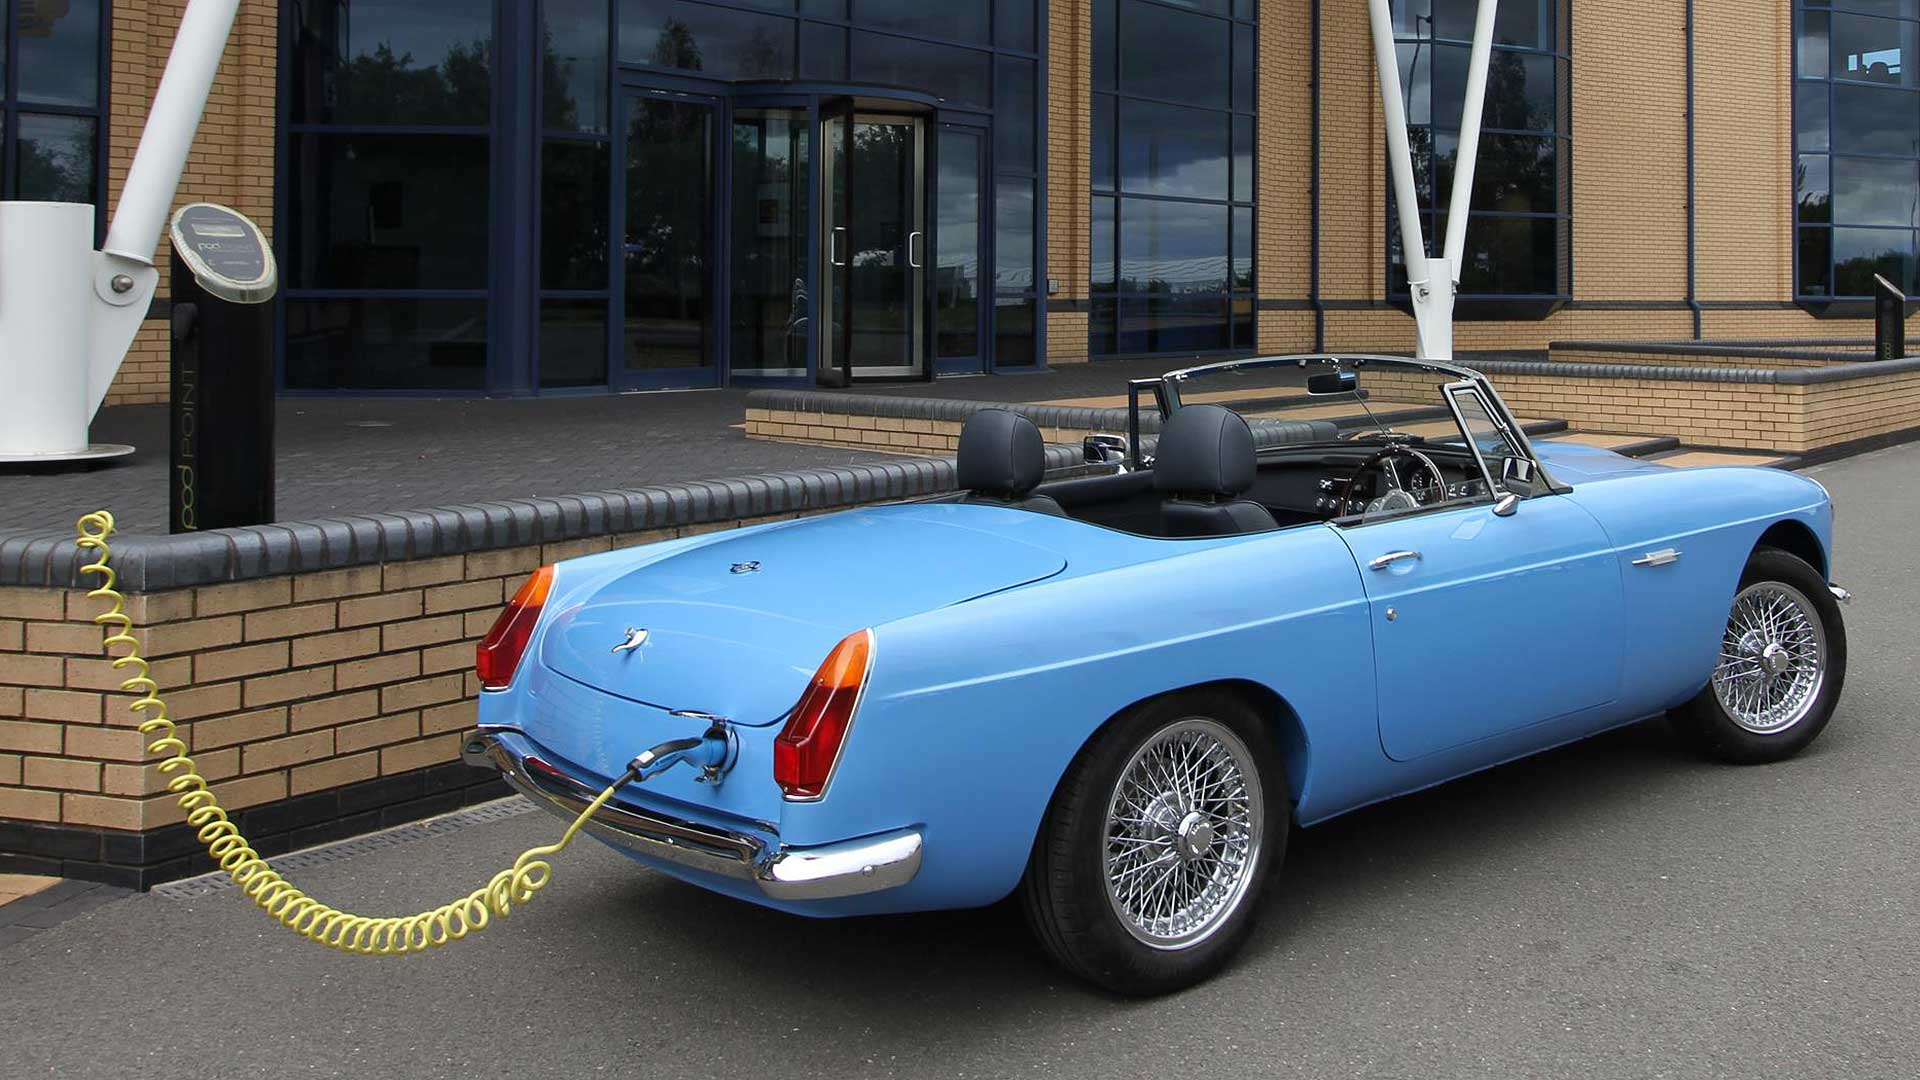 Electric classic MG conversion